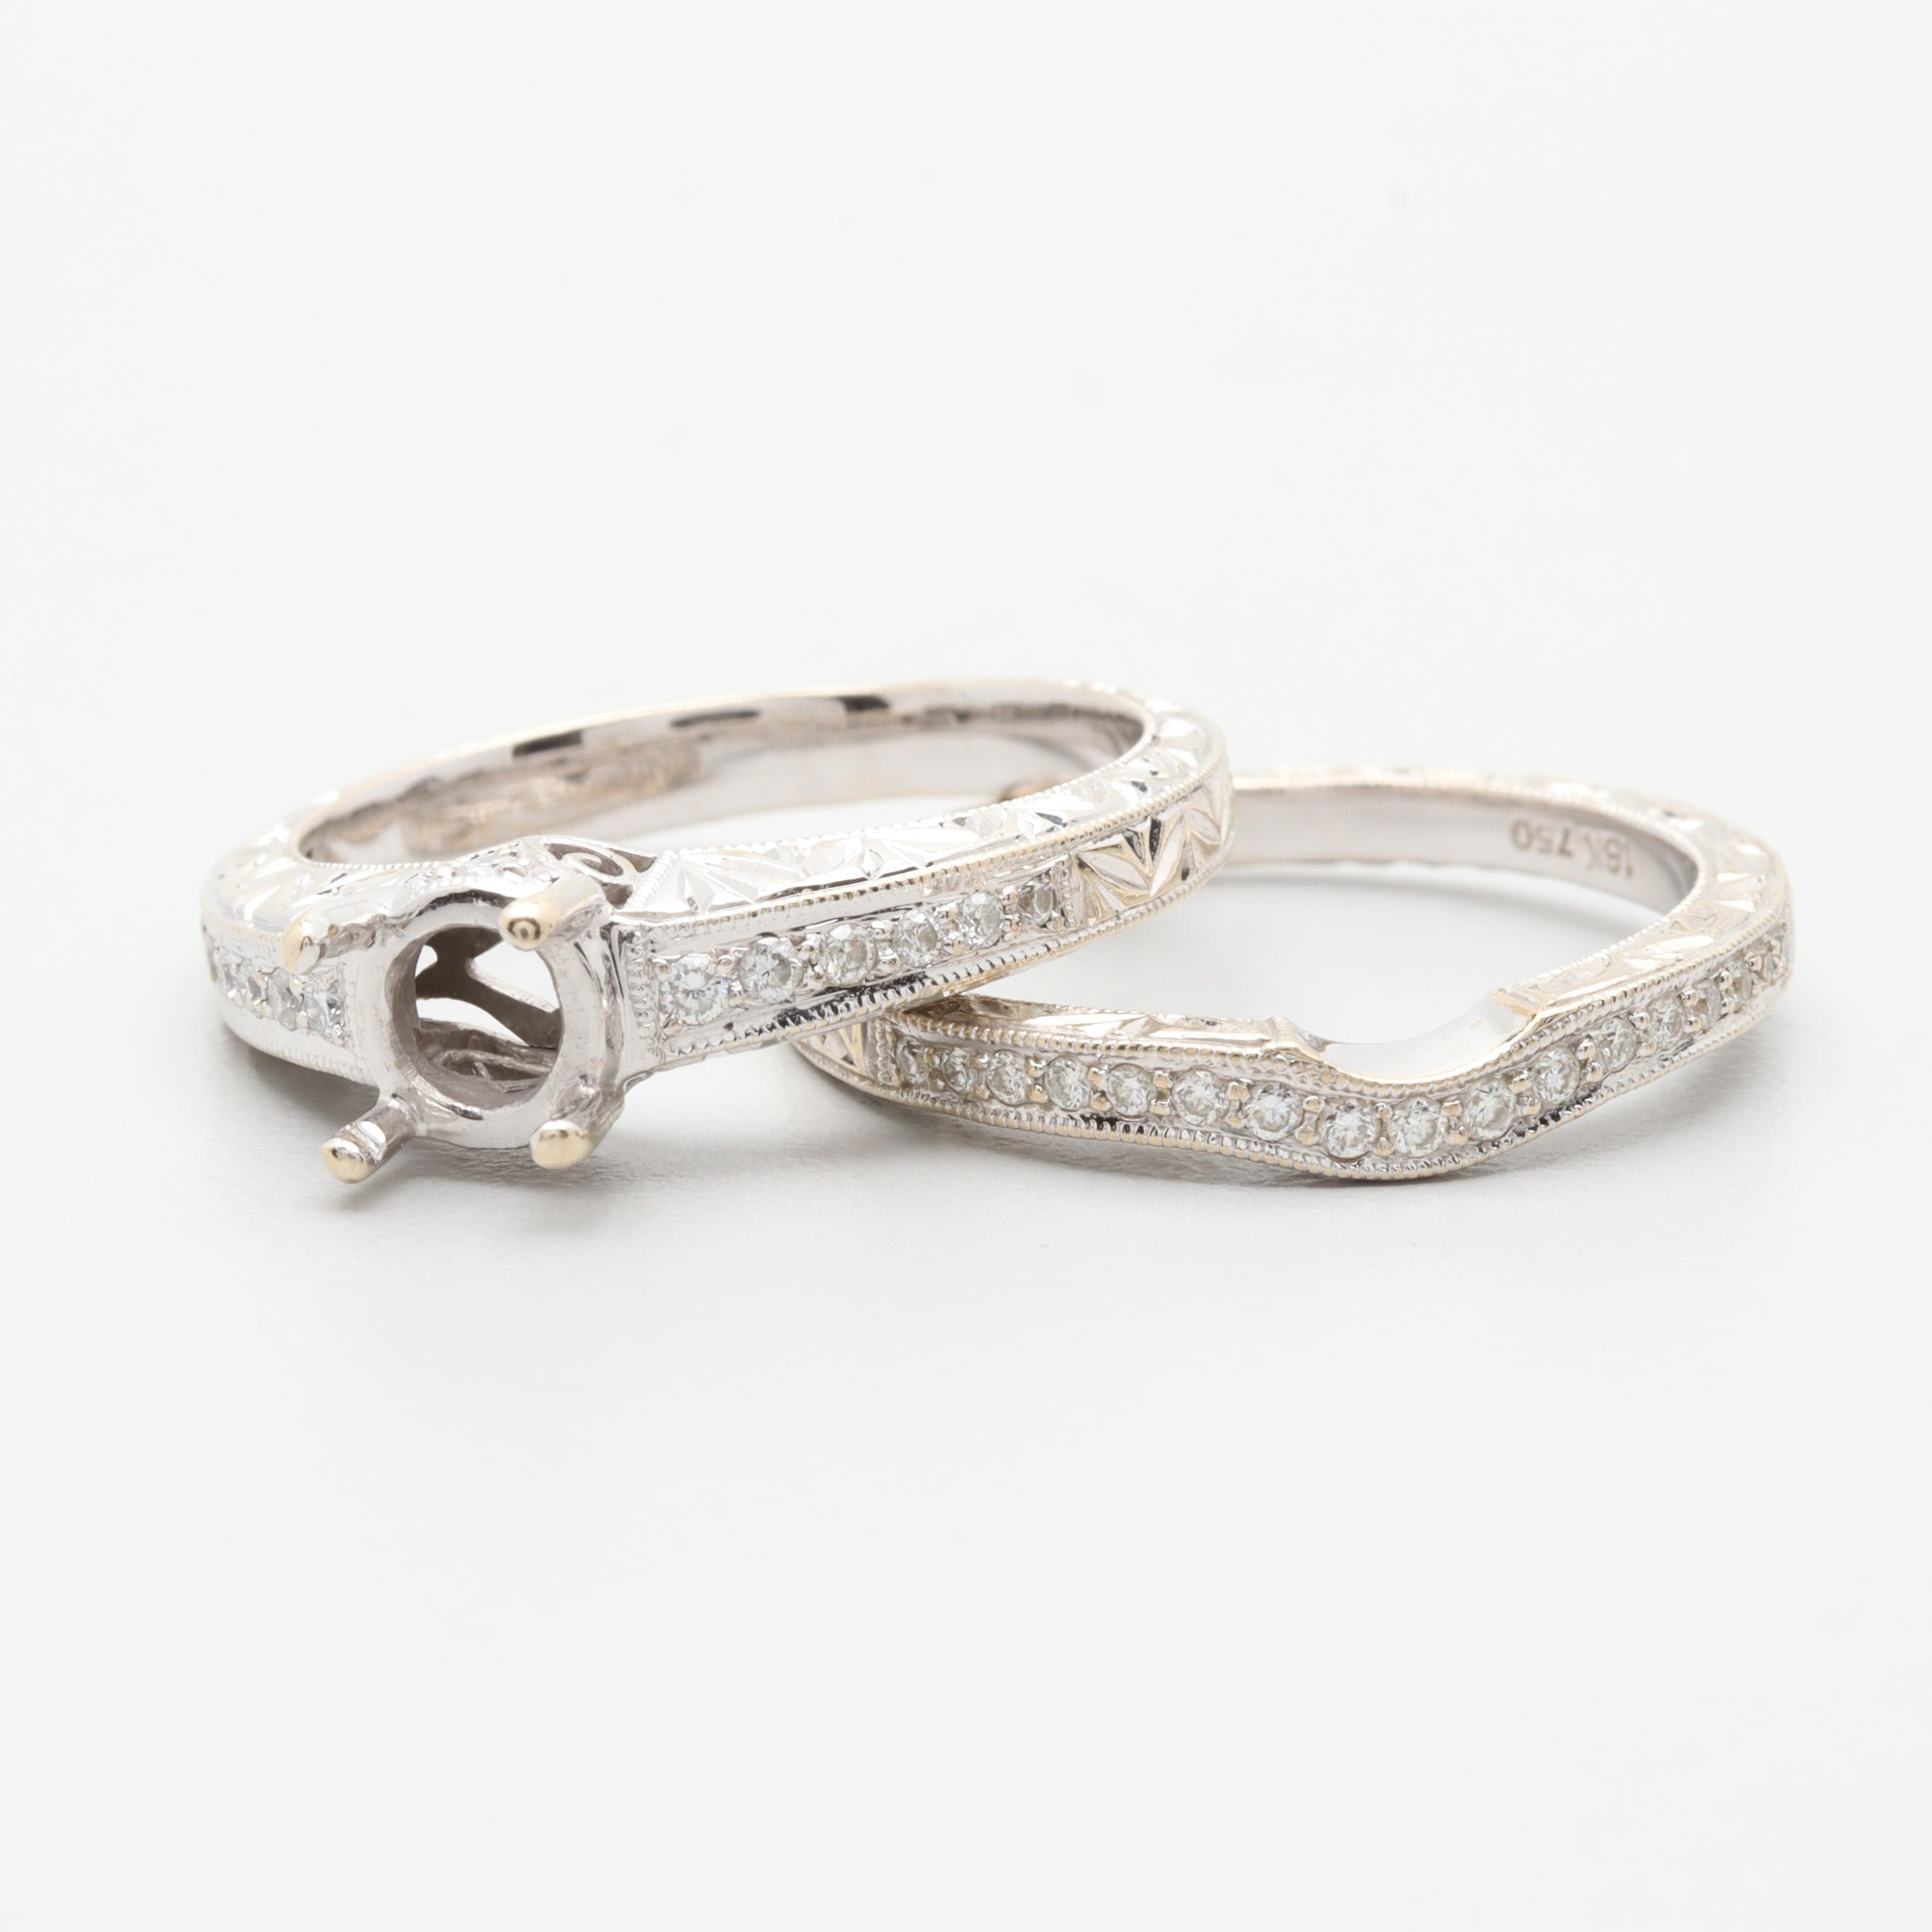 18K White Gold Semi-Mount Diamond Ring Set